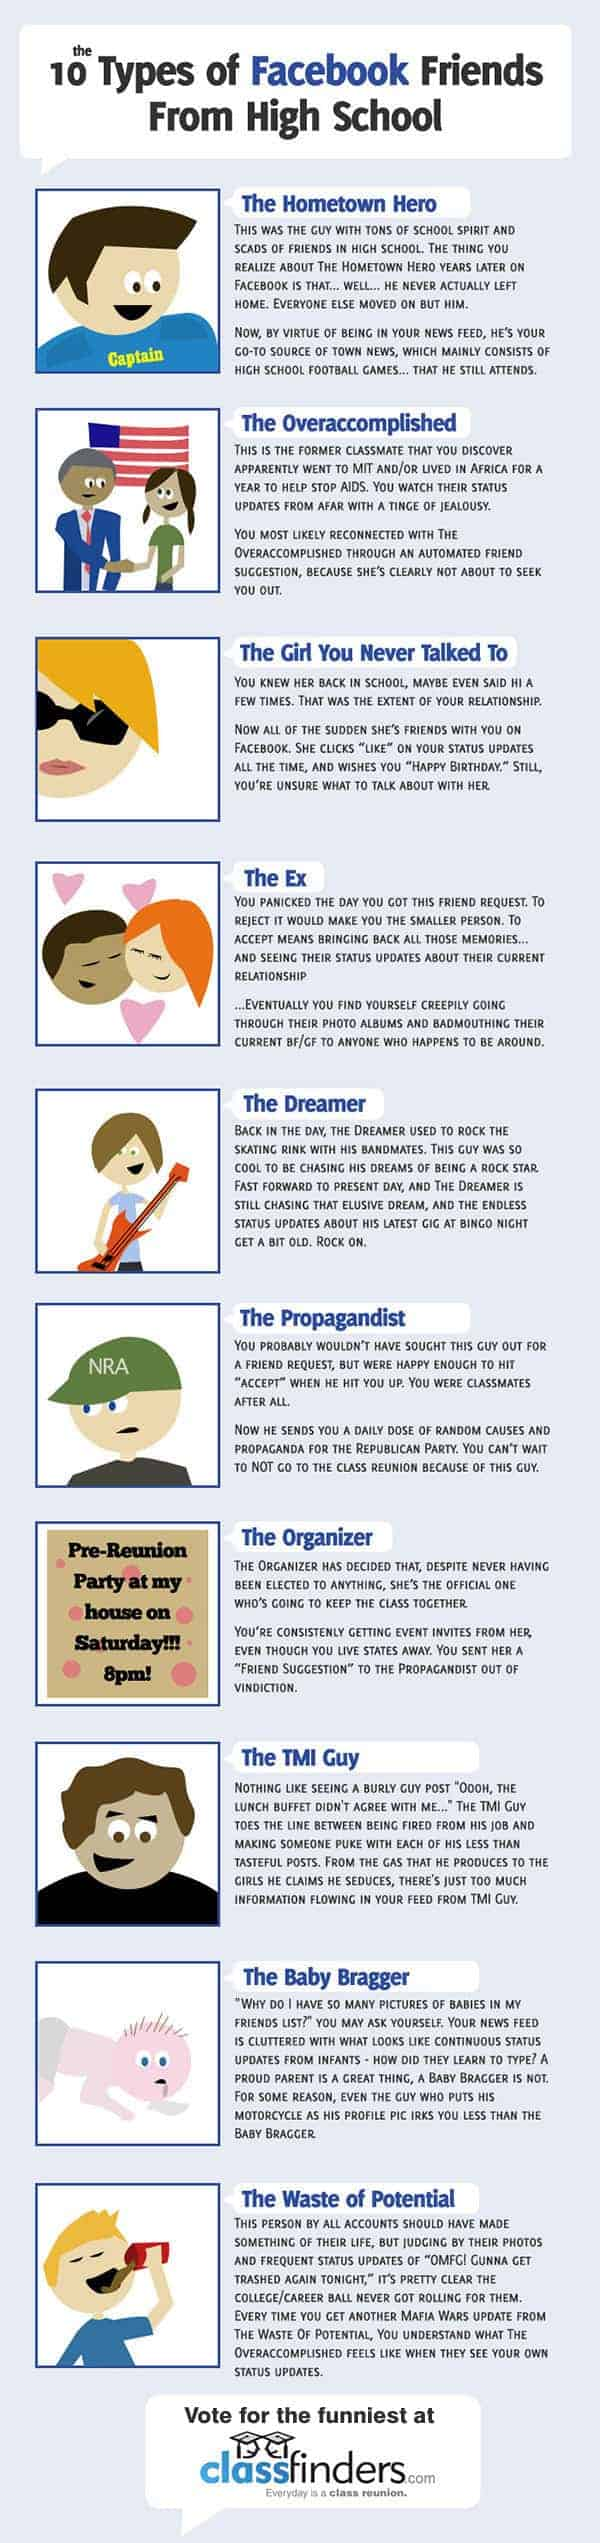 Ten Types of Facebook Friends